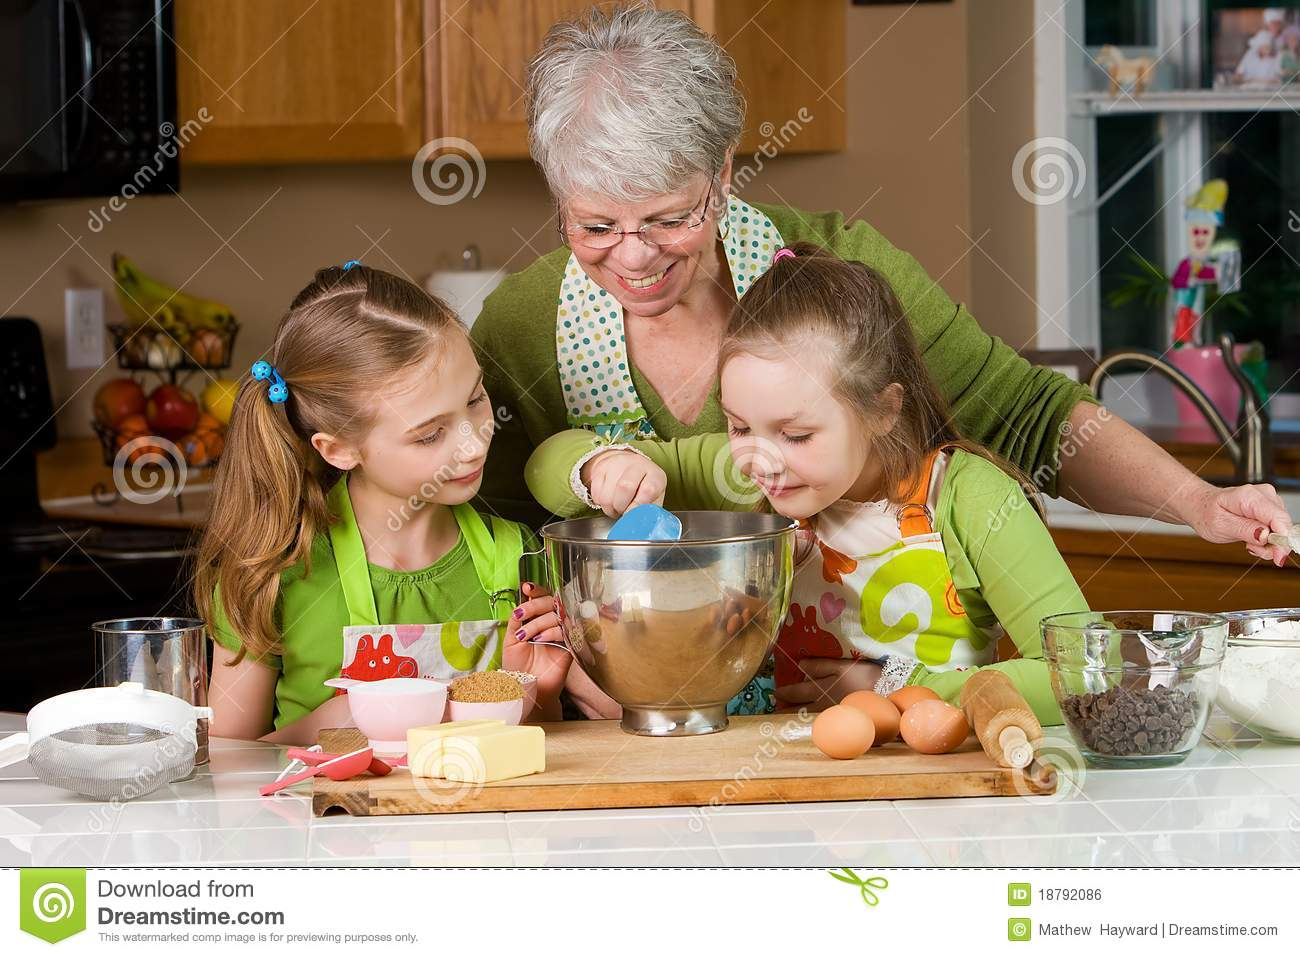 Kids and Grandma Baking in the kitchen